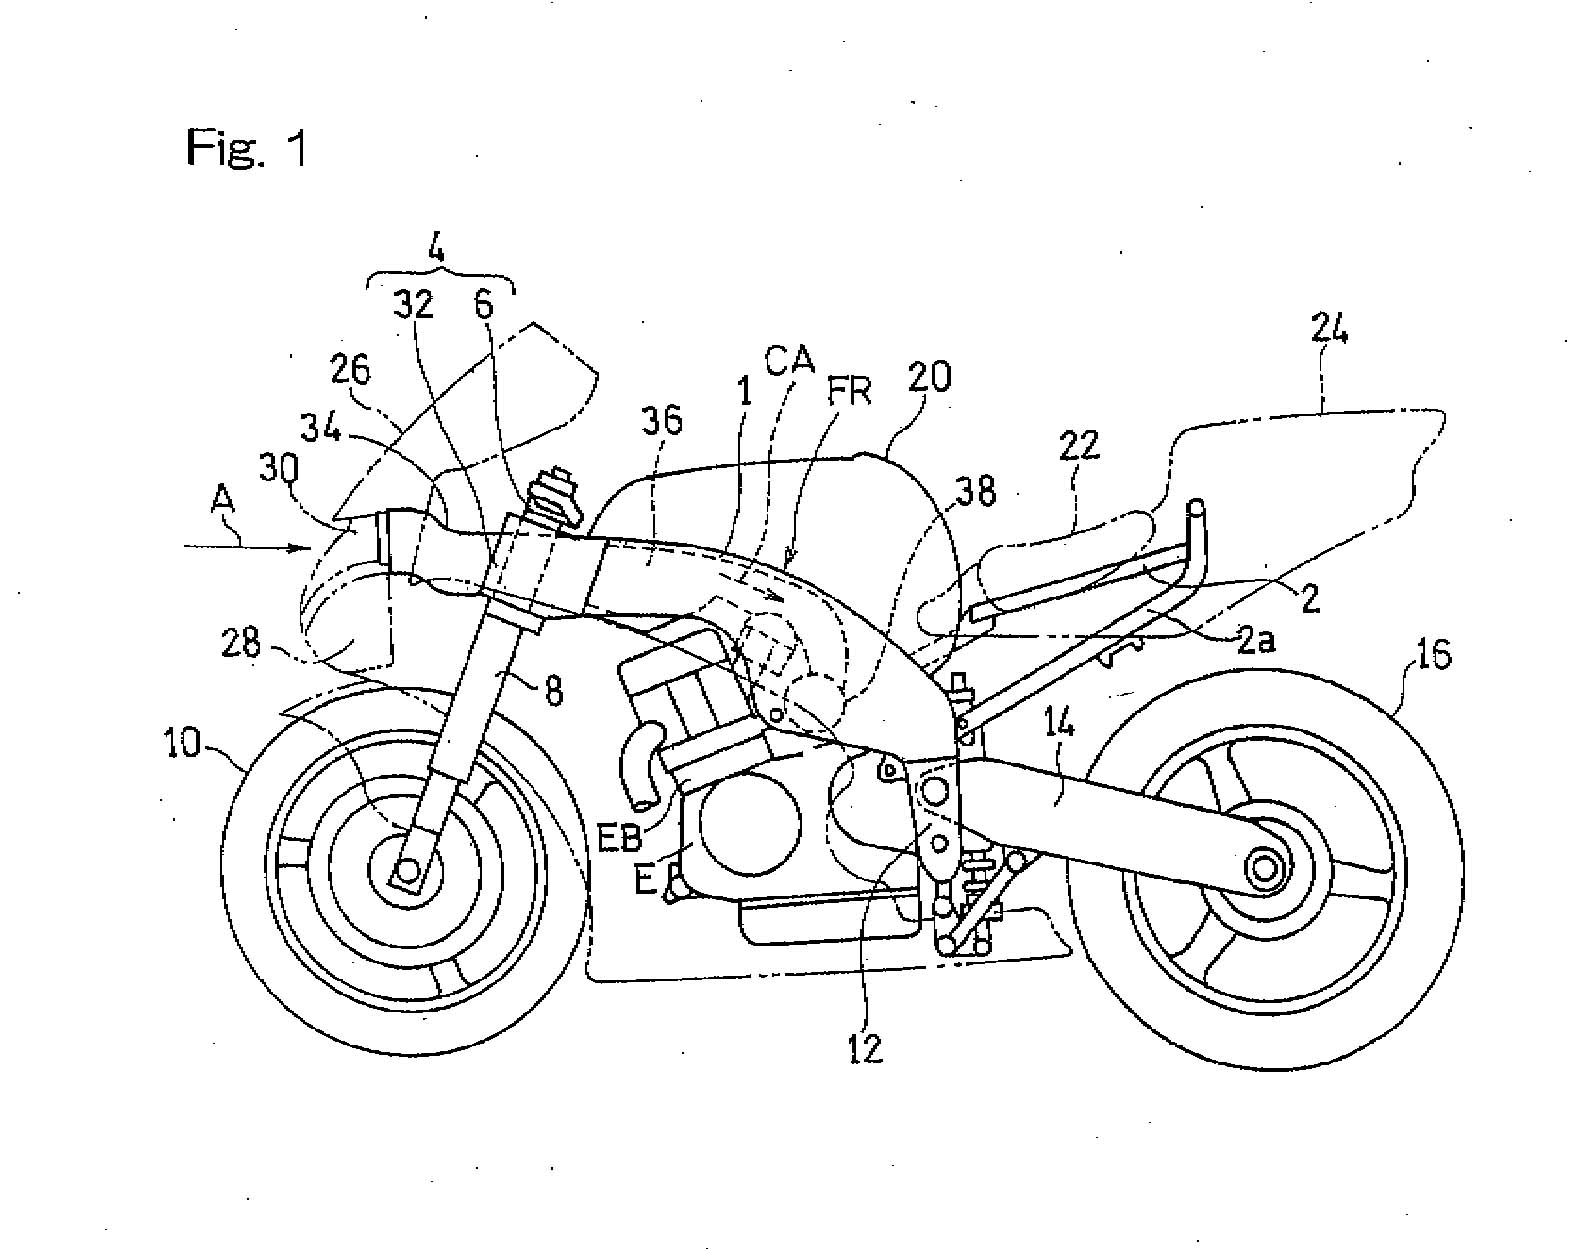 More on Kawasaki's Supercharged Motorcycle Engine